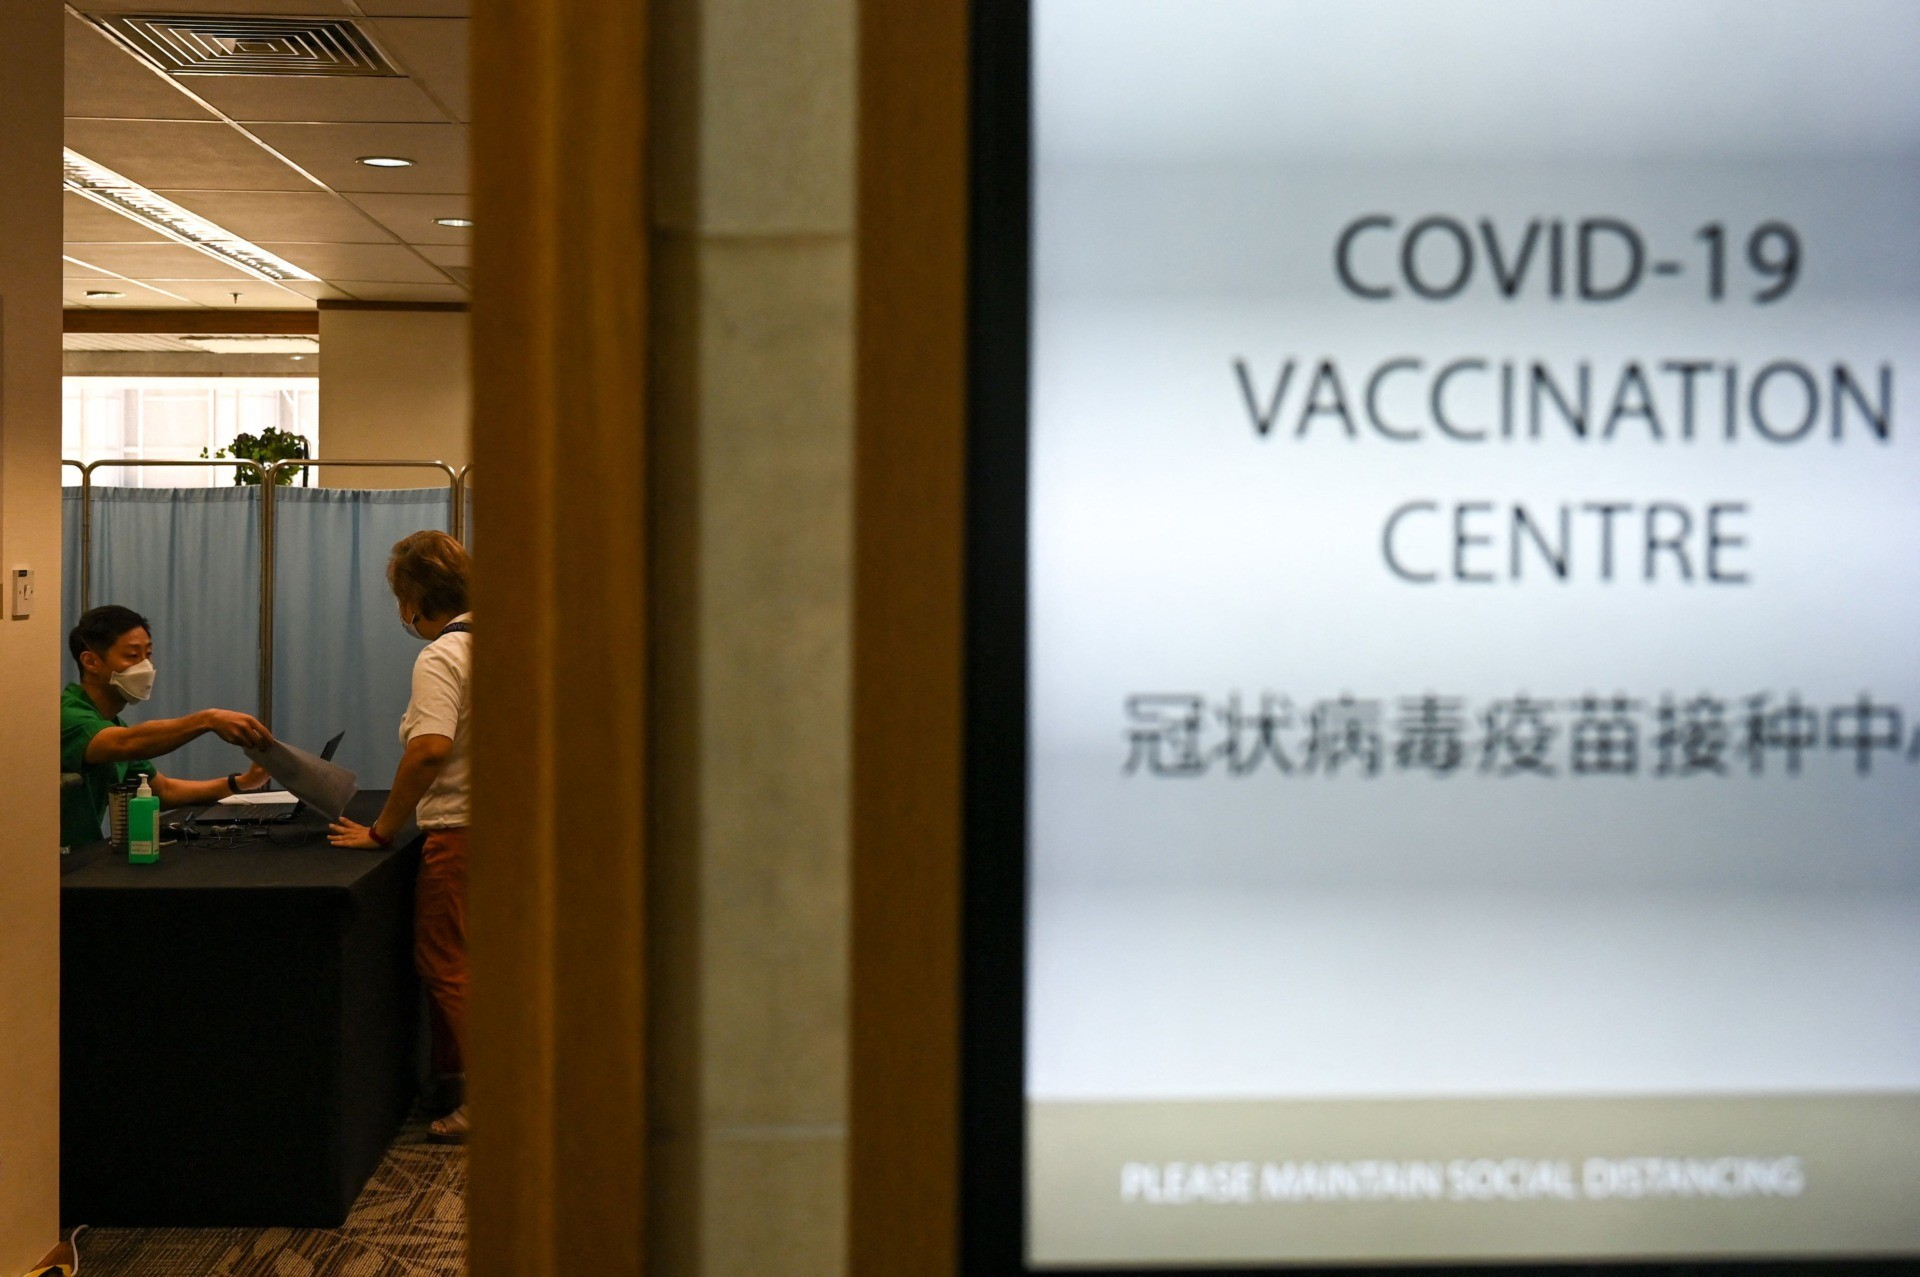 A medical staff attends to a woman before receiving a dose of the Sinopharm Covid-19 coronavirus vaccine at the Mount Elizabeth hospital vaccine centre in Singapore on September 7, 2021. (Photo by Roslan Rahman / AFP) (Photo by ROSLAN RAHMAN/AFP via Getty Images)